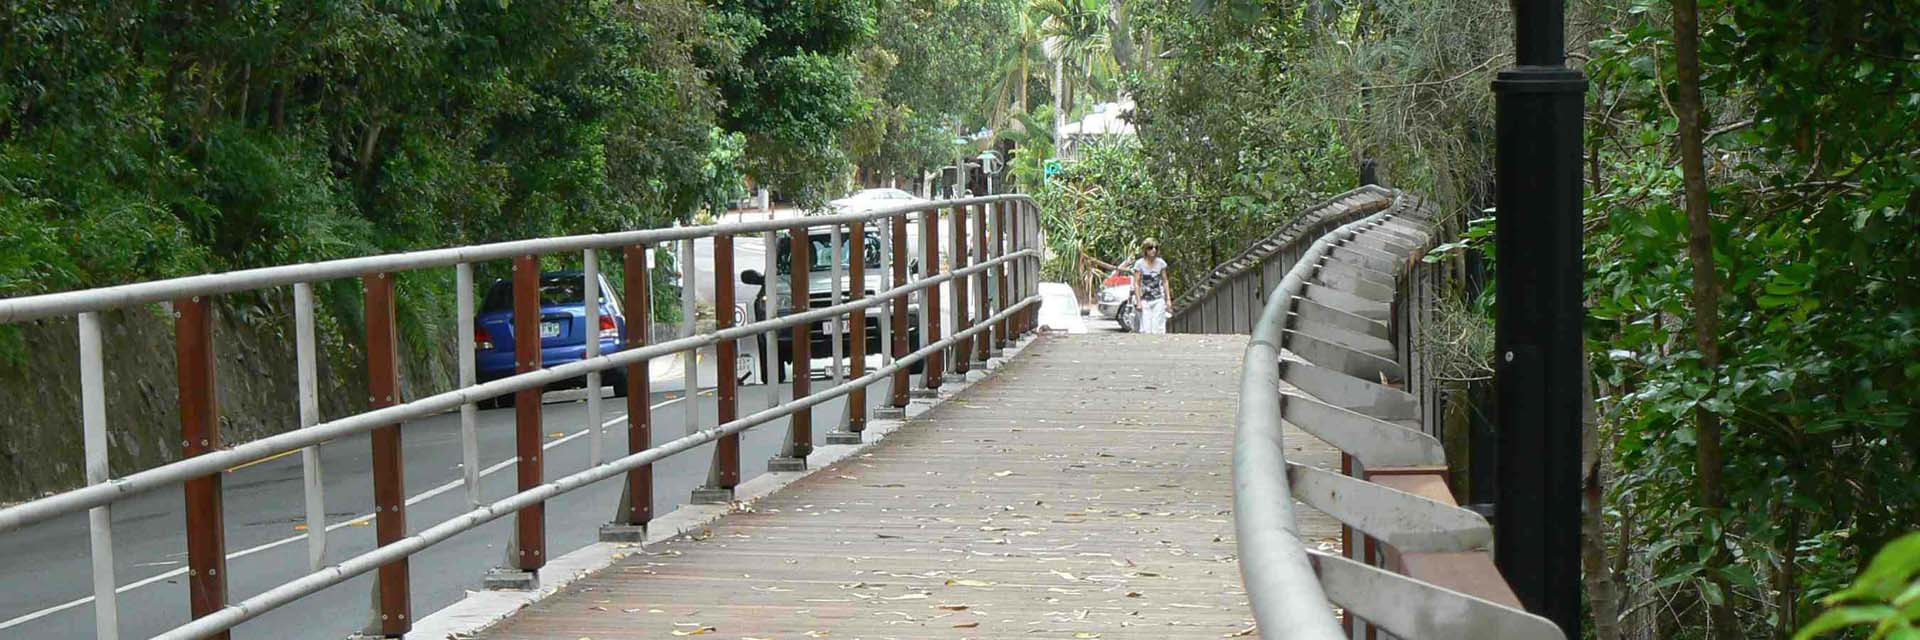 Stainless Steel & Timber Pedestrian Walkway - Noosa Boardwalk Stage 1, Park Rd, Noosa.